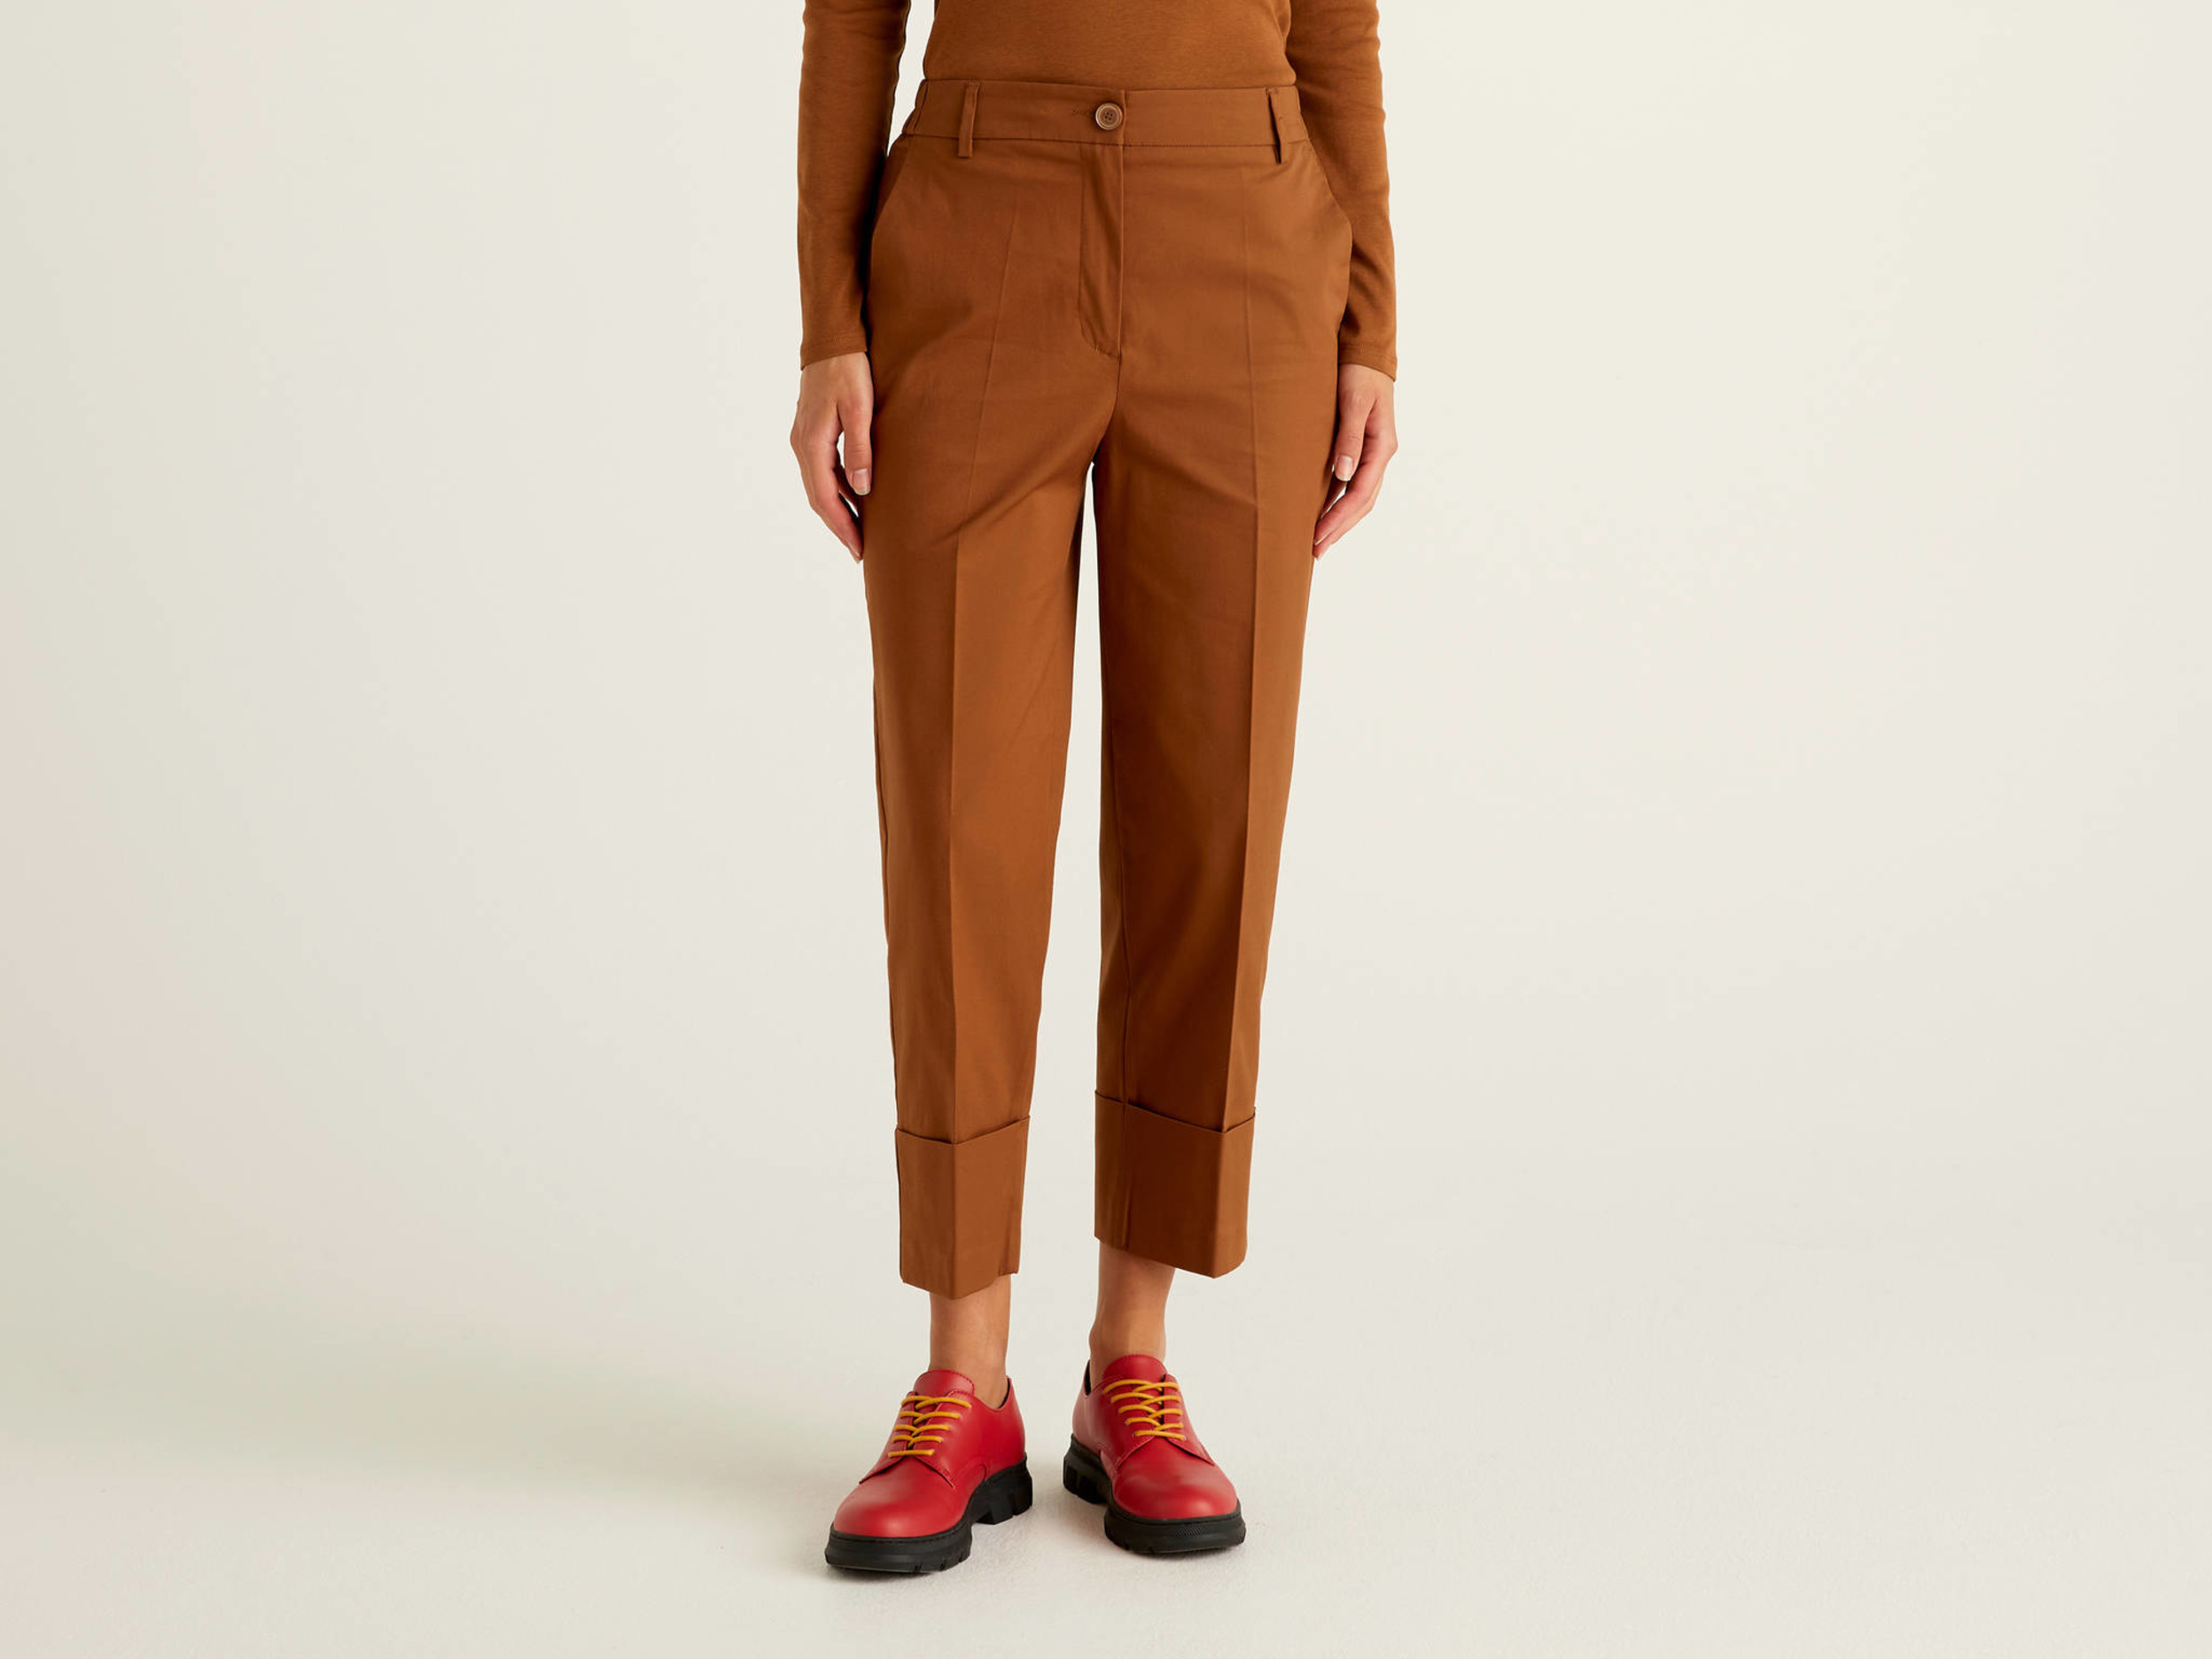 Benetton, Trousers With Maxi Cuffs, size , Brown, Women